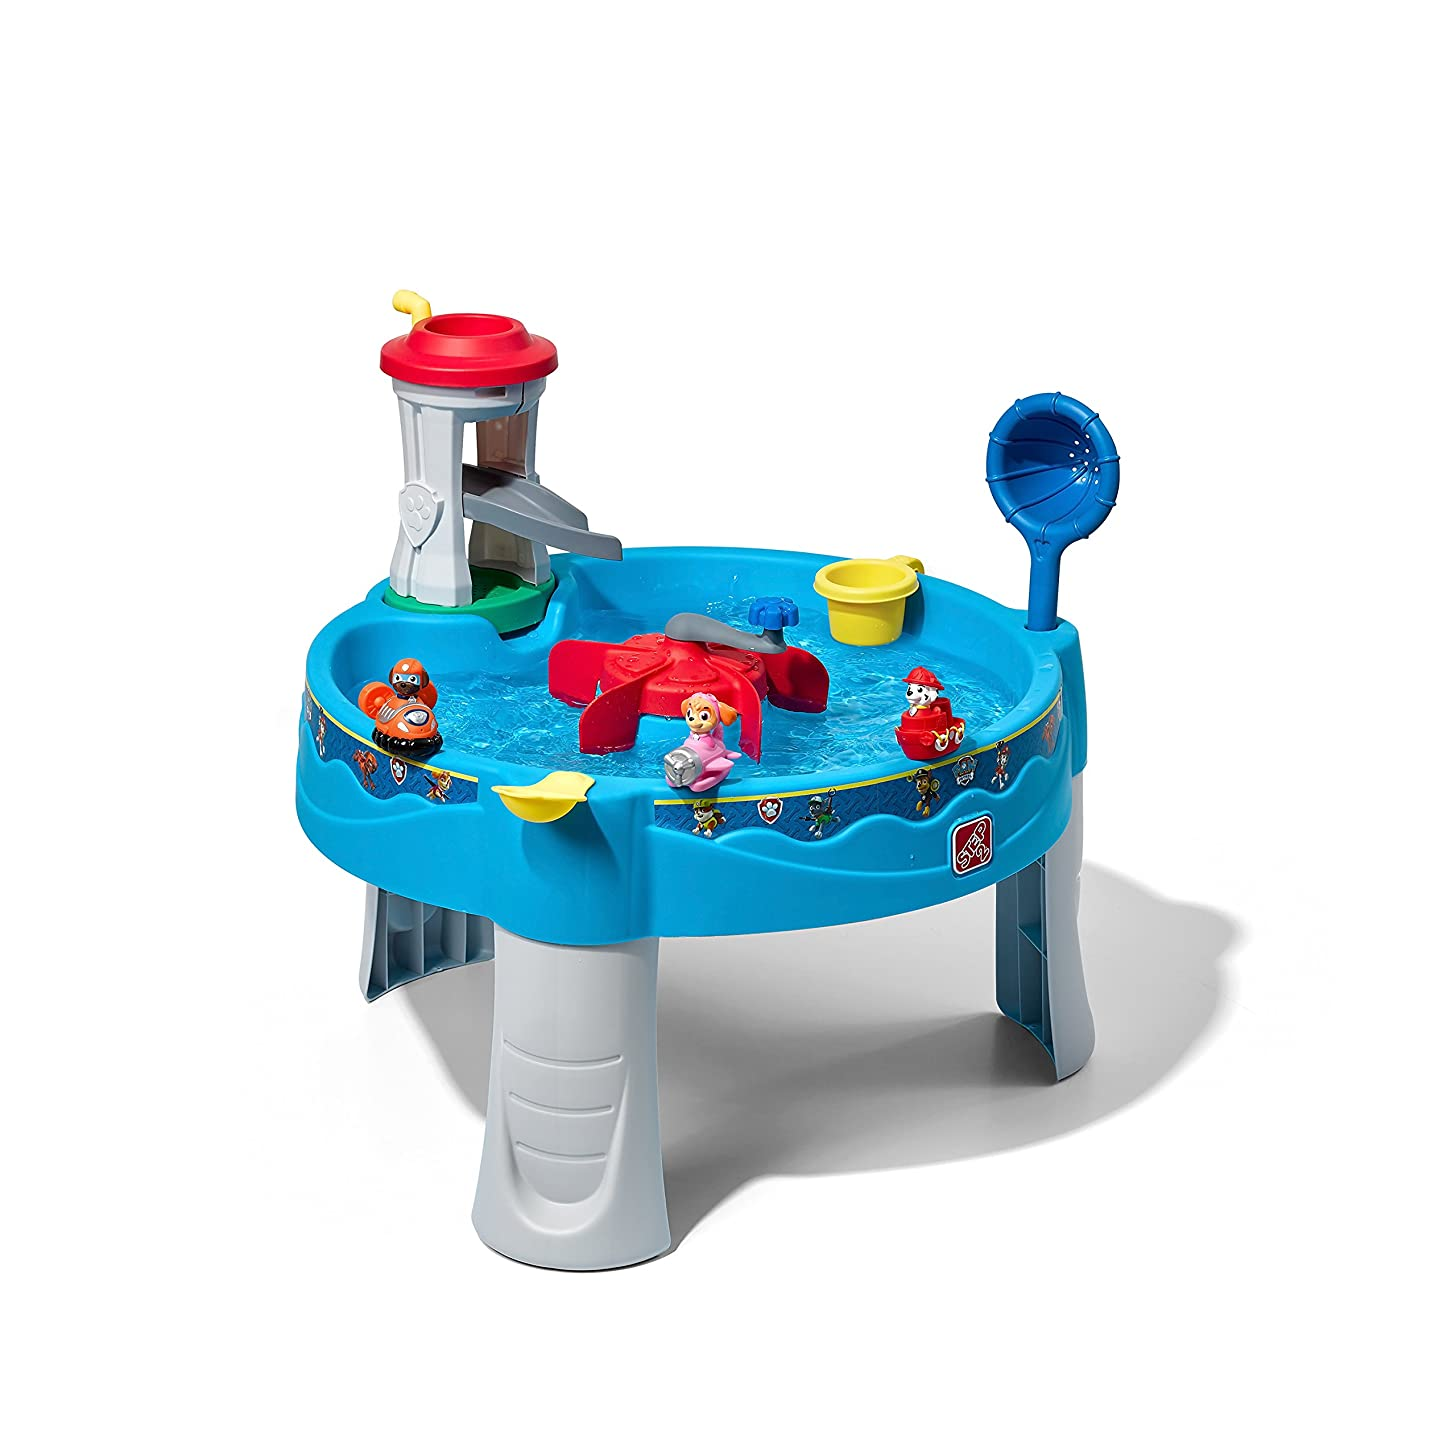 Paw Patrol Water Table with Accessory Set & 3 Characters